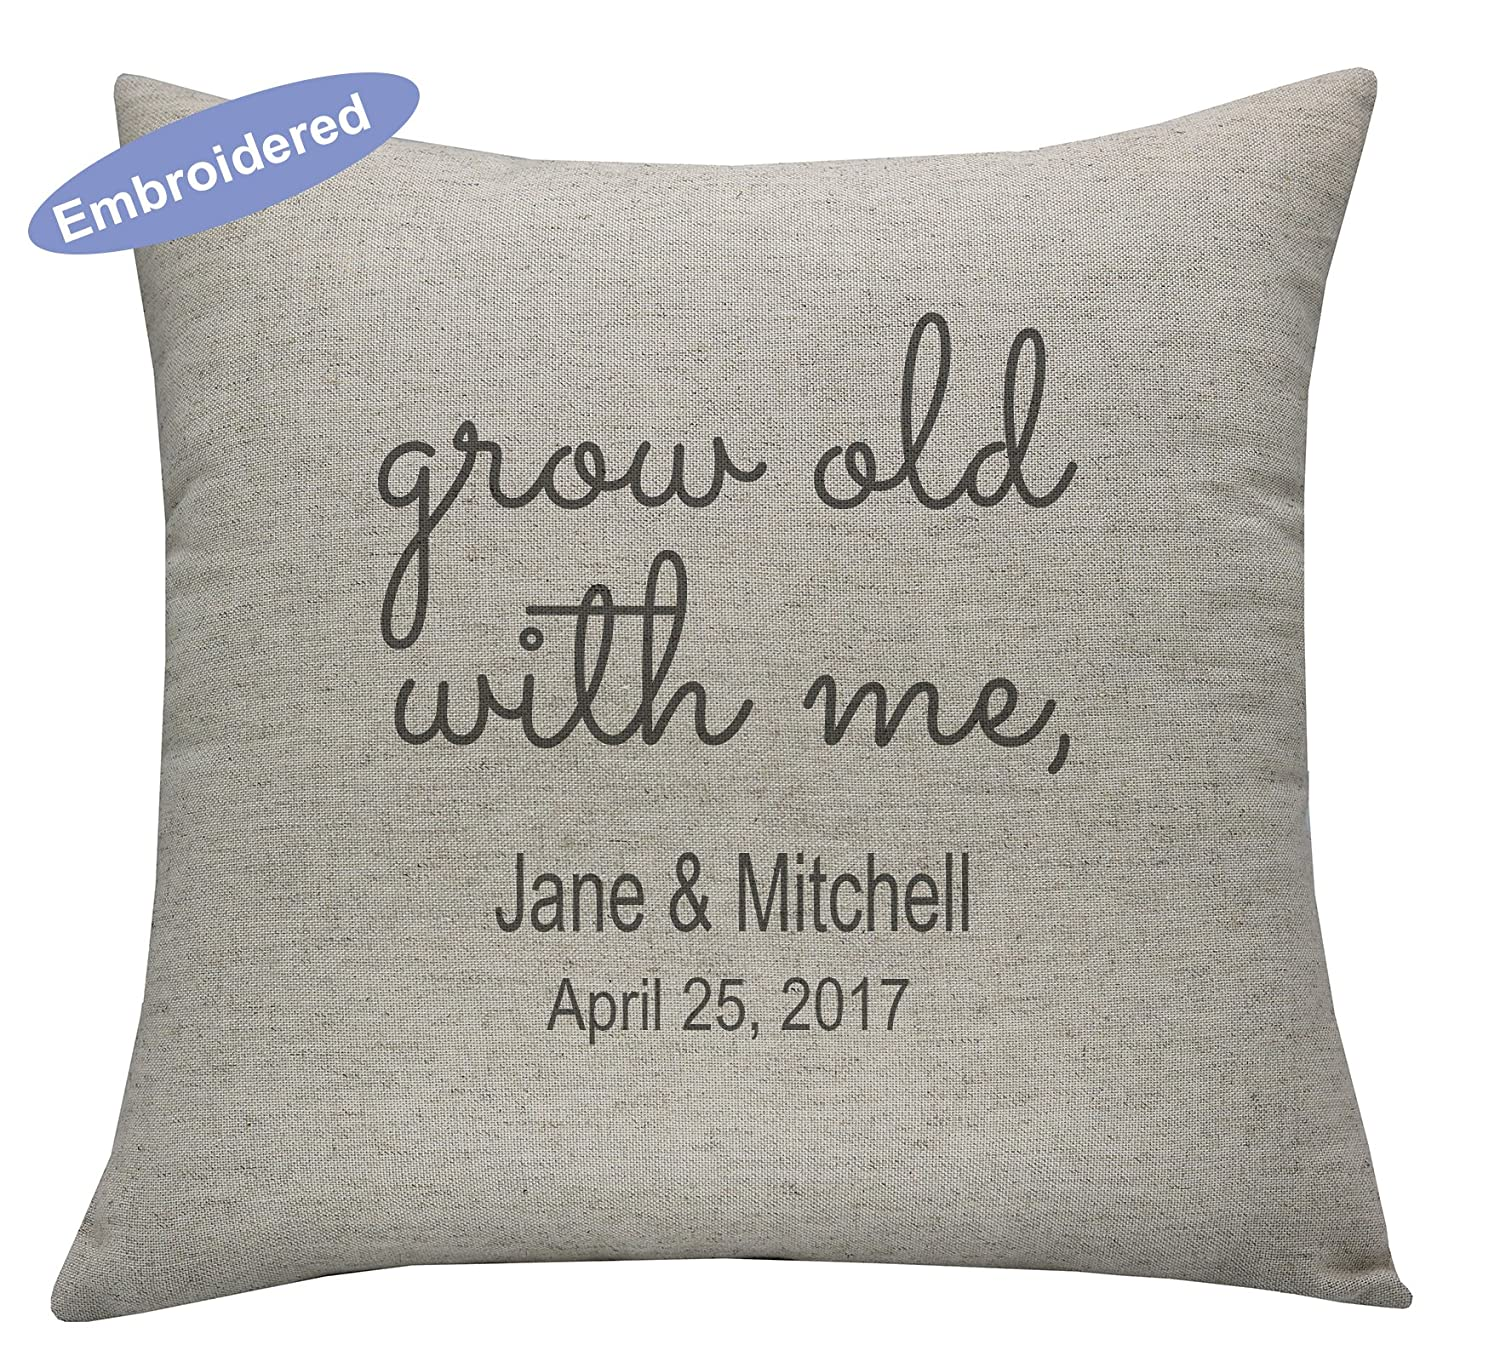 Yugtex Cushion Cover Personalized Anniversary Pillow Cover, Wedding Day Pillow Cover, Couples Pillow, Wedding Shower gift, Anniversary Date Pillow,Rustic Wedding, Custom Ring pillowcase,